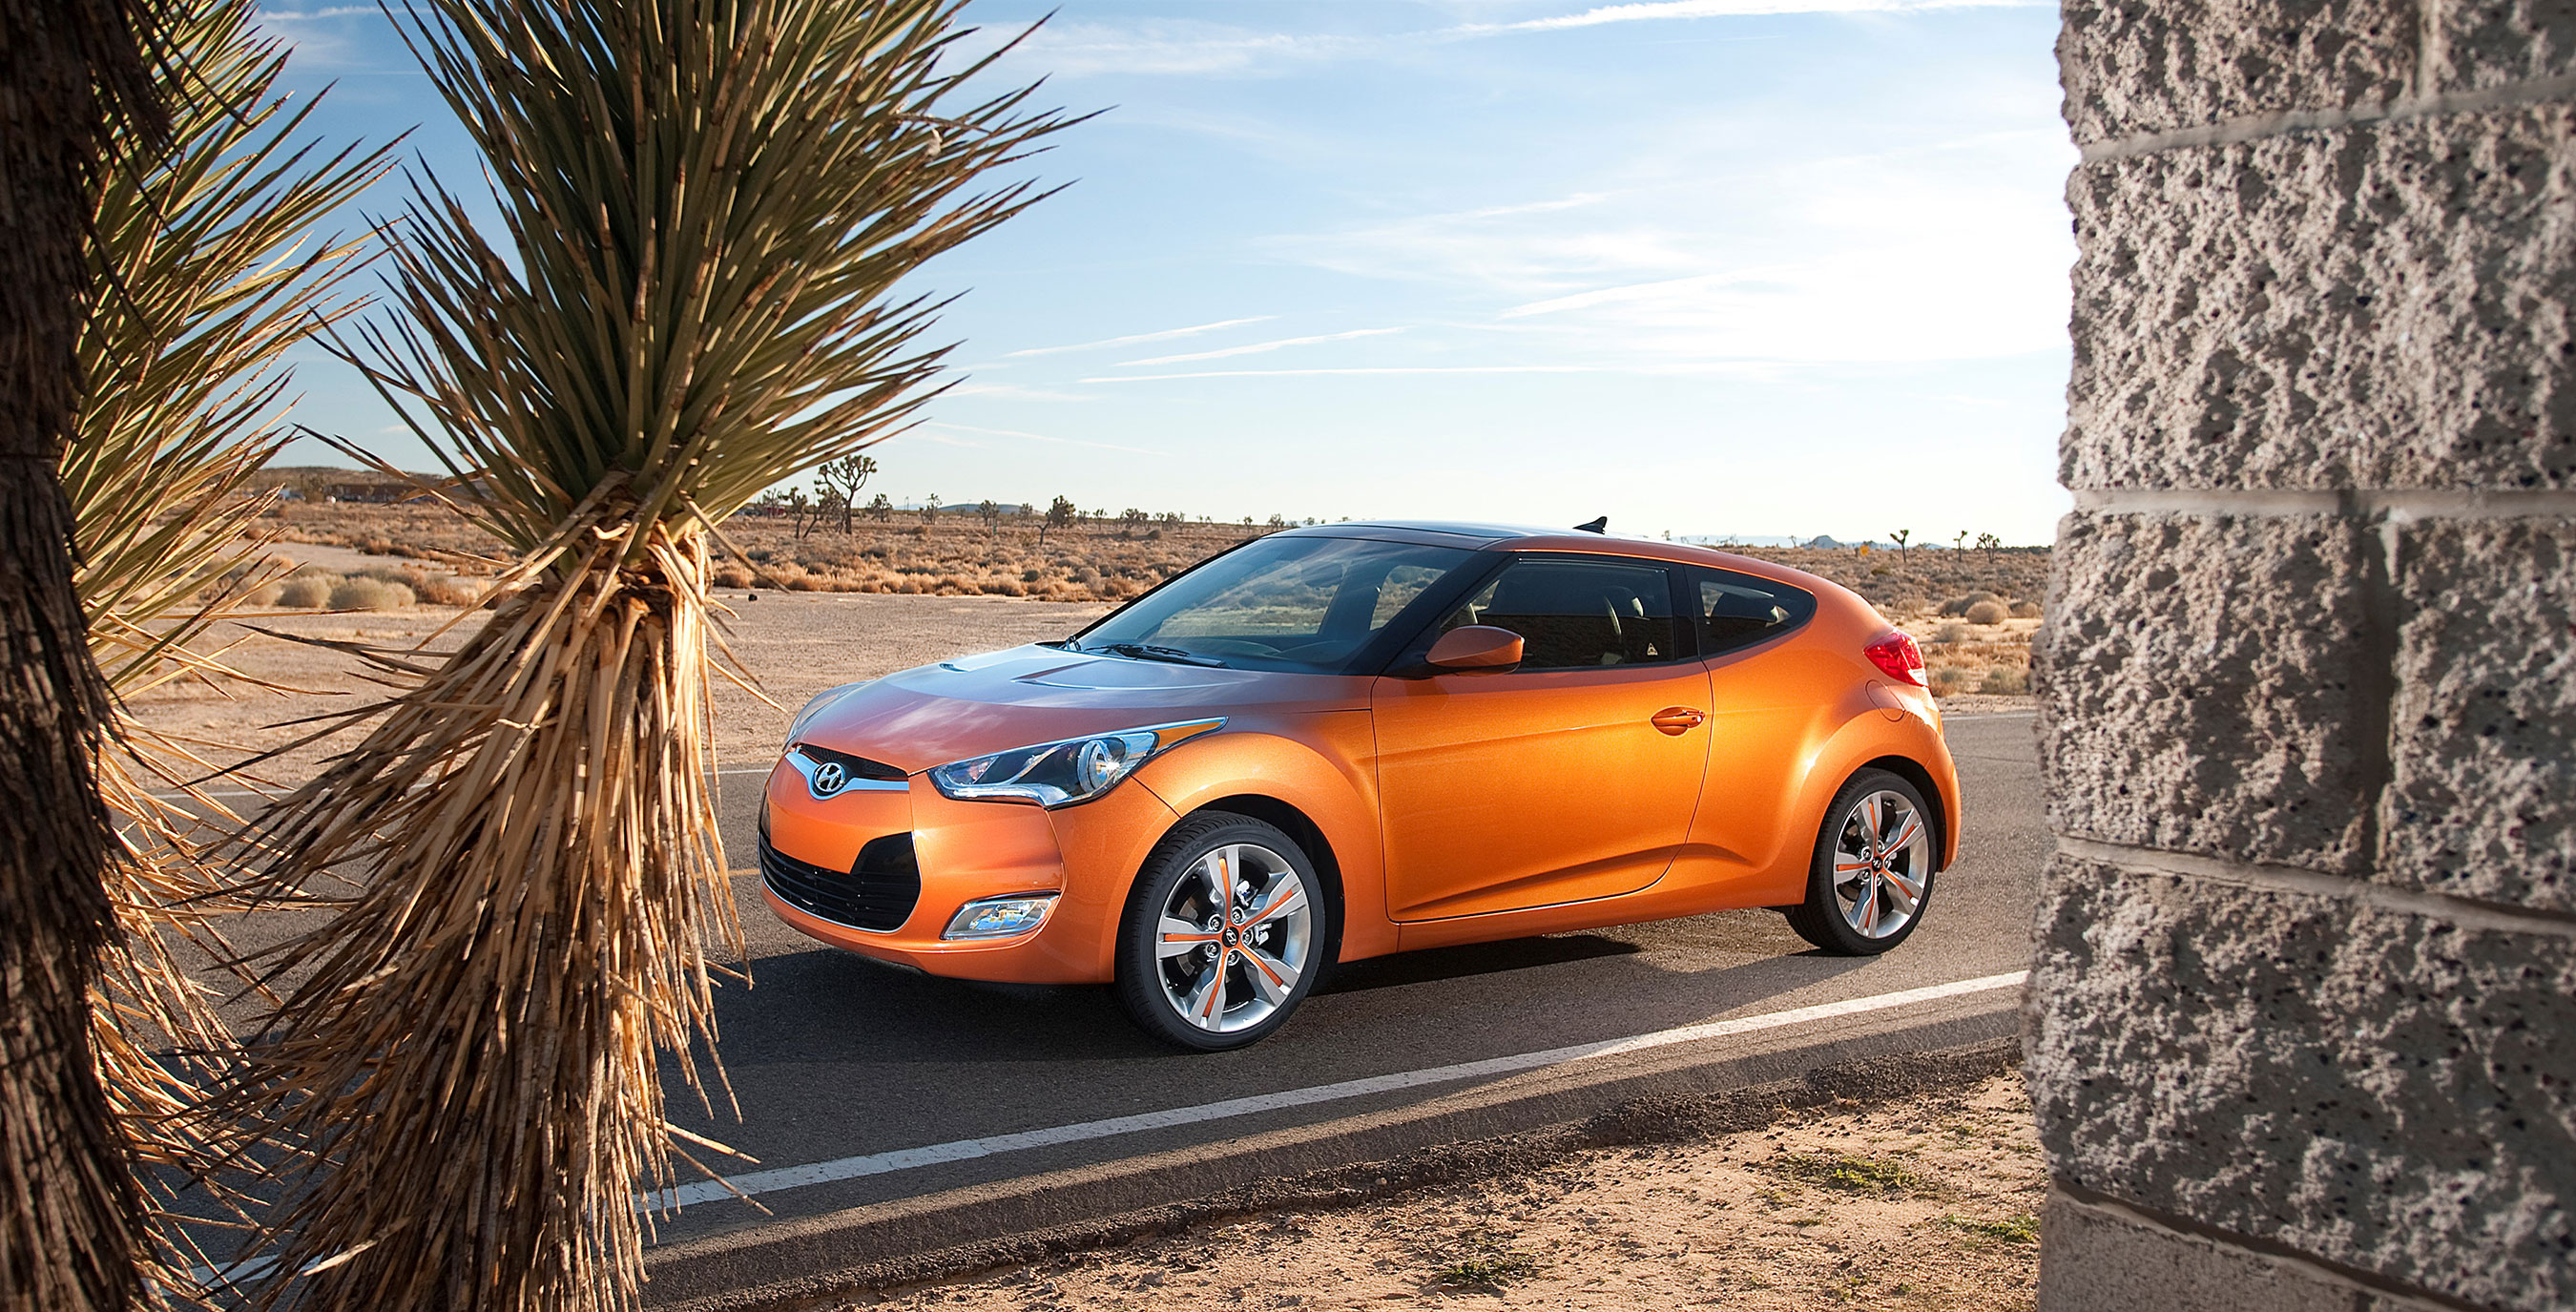 10 Coolest New Cars Under $18,000 Of 2014 Named By KBB.com - Jun ...